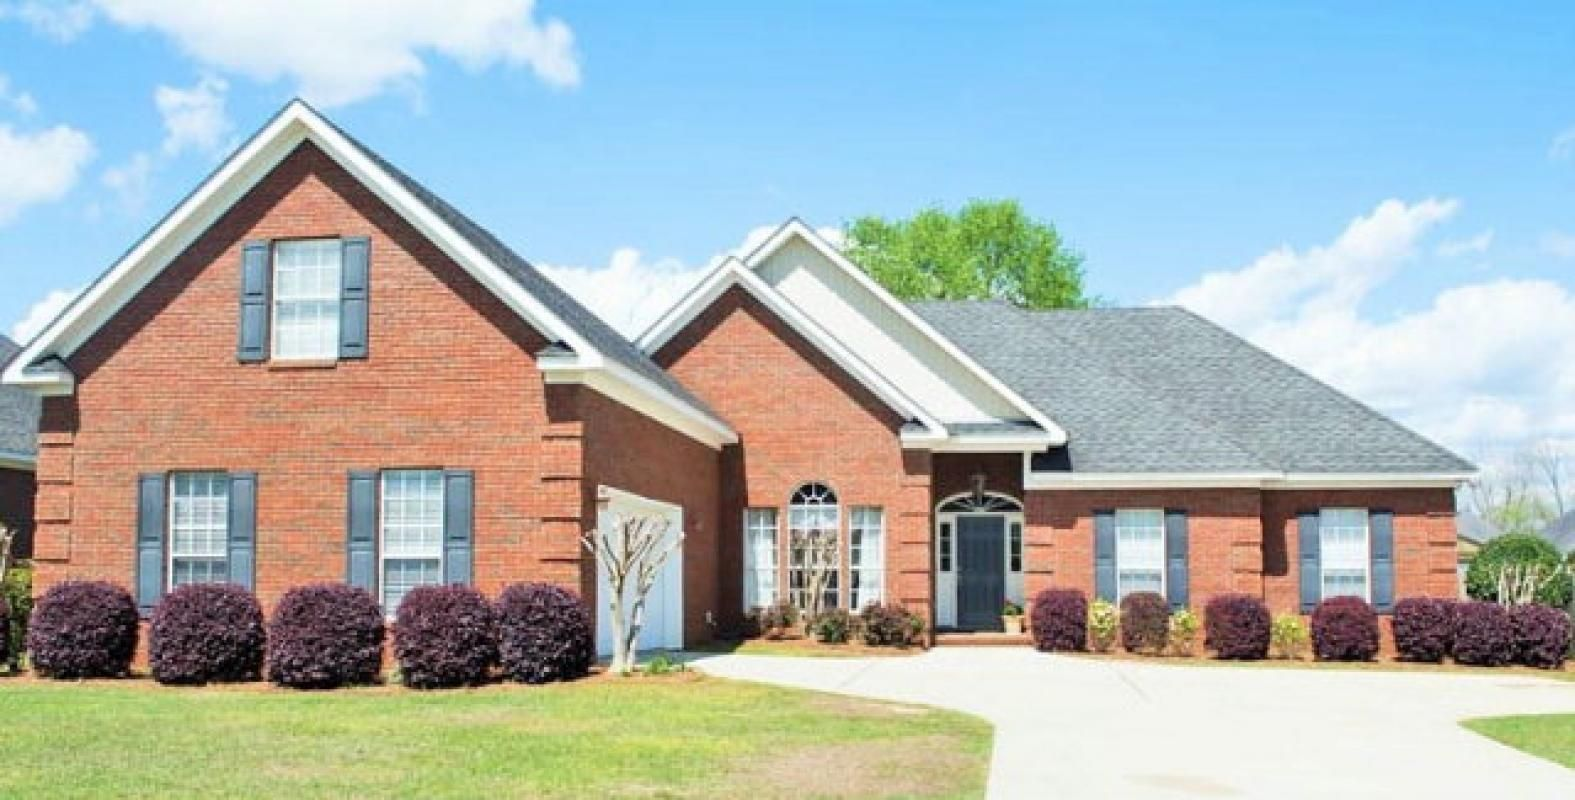 Warm & Inviting Custom Brick Home with a view of Lake. Features big kitchen with gas stove and granite. Wood and tile floors in main living areas. Gas fireplace.Separate dining room plus breakfast room. Bonus/4th BR has 2 closets,1/2 Bath & separate cooling. Large master with 13x14 Glamour Bath.Enjoy the privacy and view of the lake from the 24x11 screened porch.Lot backs up to community property